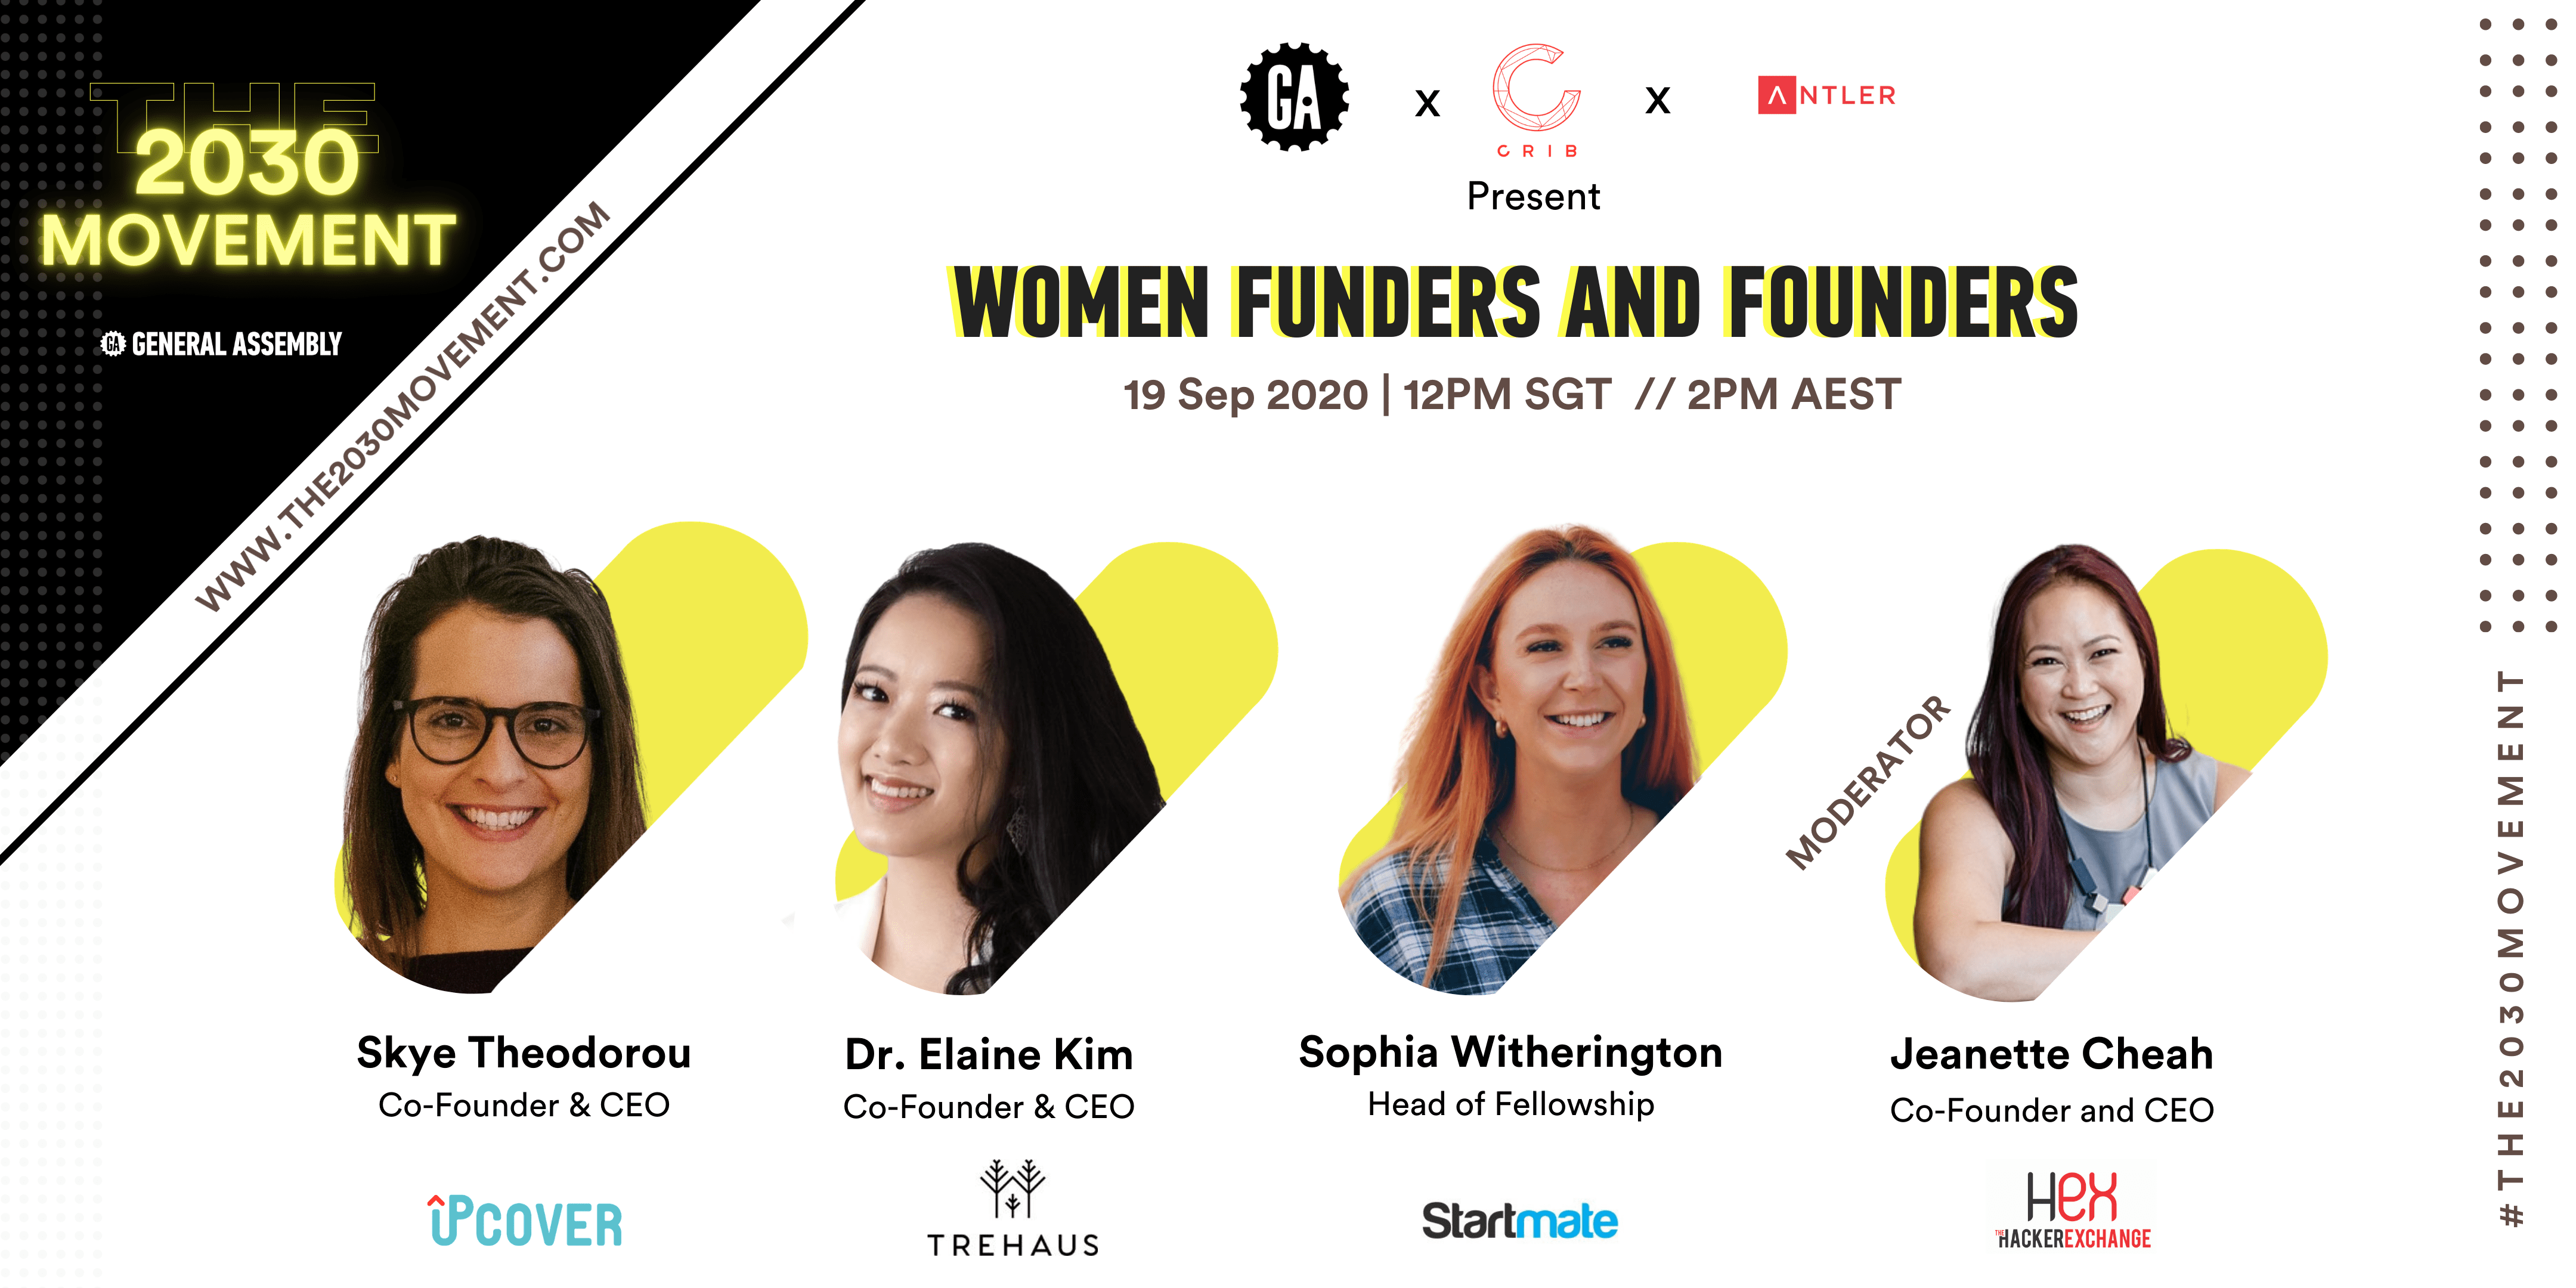 2030 Movement: Women Funders and Founders